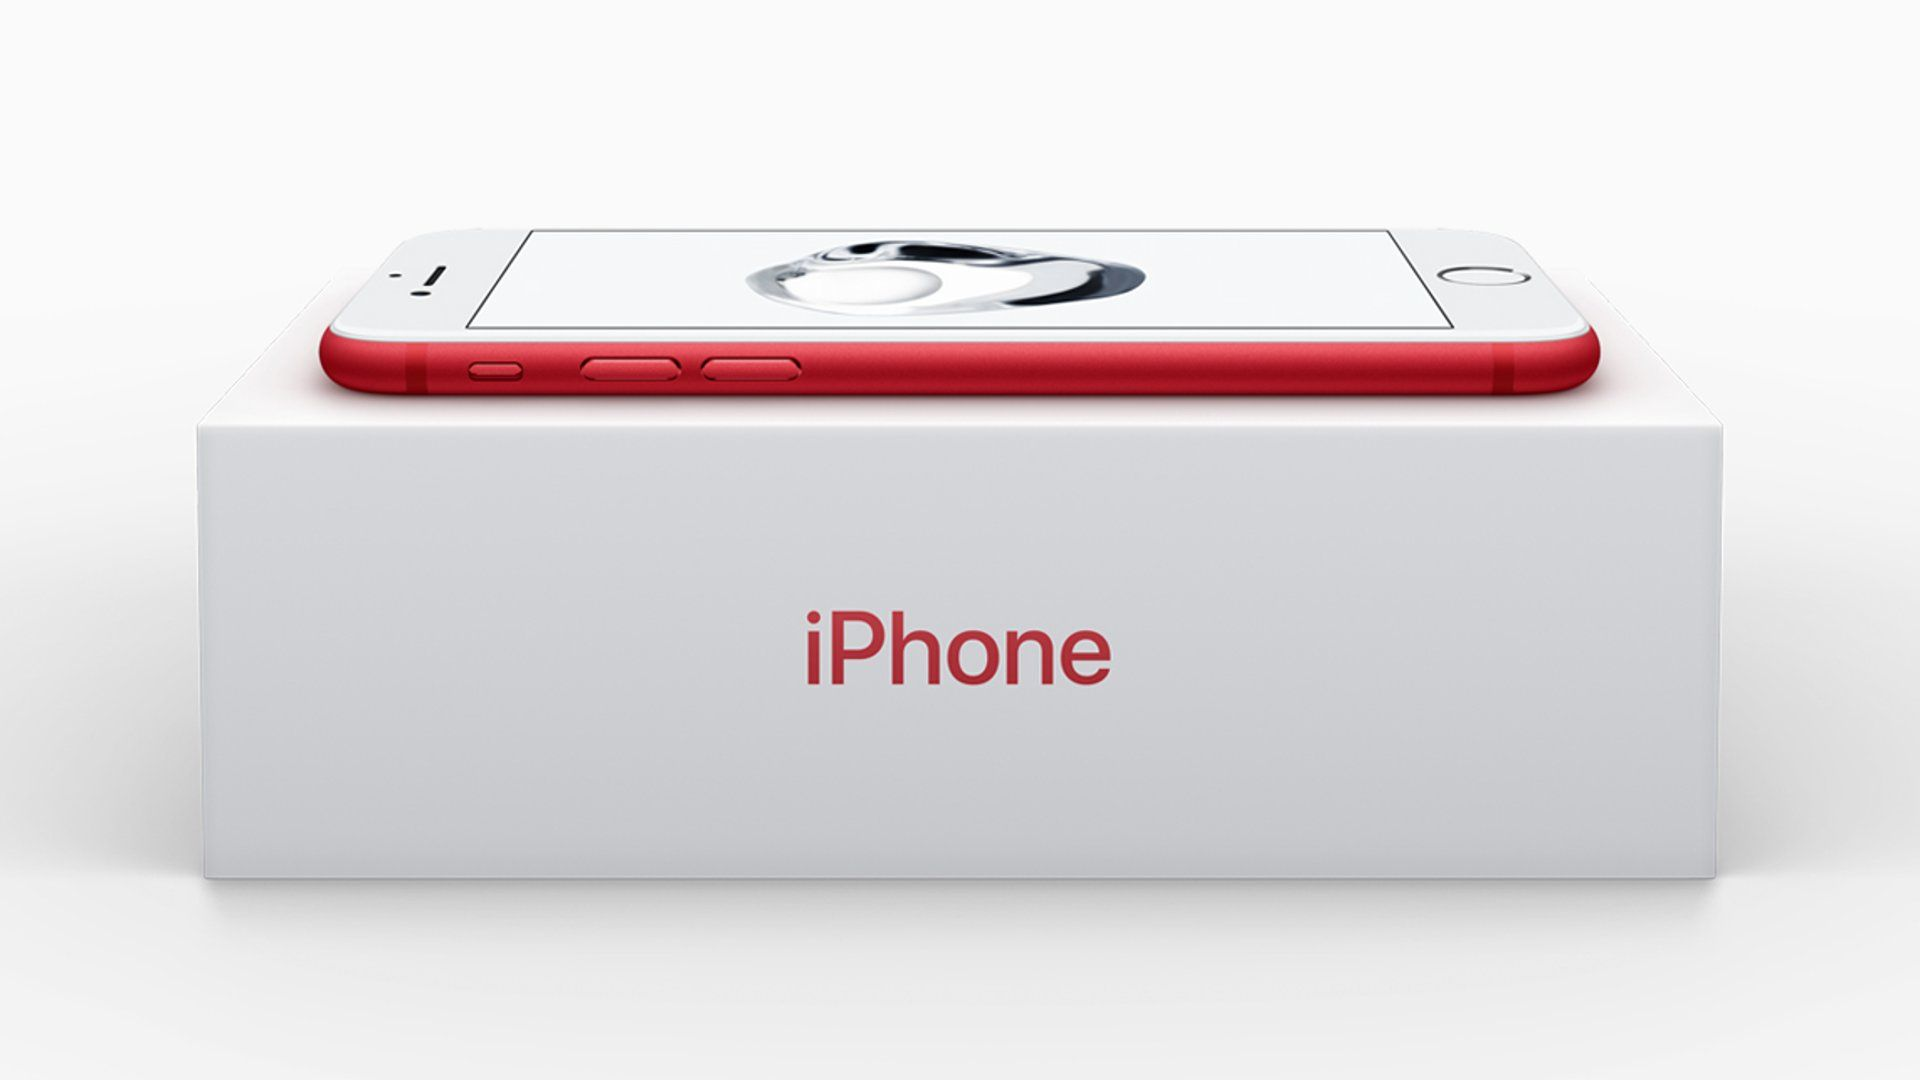 verizon will offer special edition product red iphone 7 and iphone 7 plus and new 9 7 inch ipad. Black Bedroom Furniture Sets. Home Design Ideas